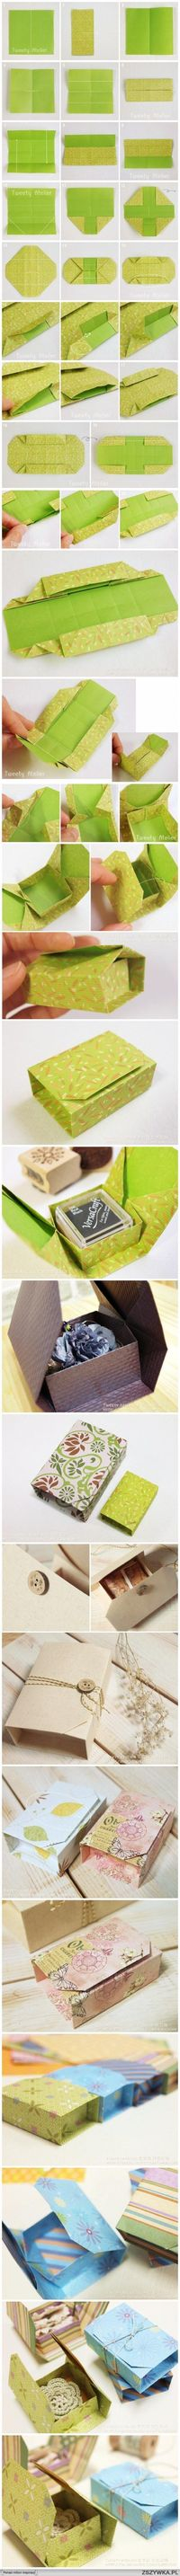 http://img.zszywka.pl/0/0160/w 8857/DIY-Zrob-to-sam/oorigamigift-box.jpg very cute!